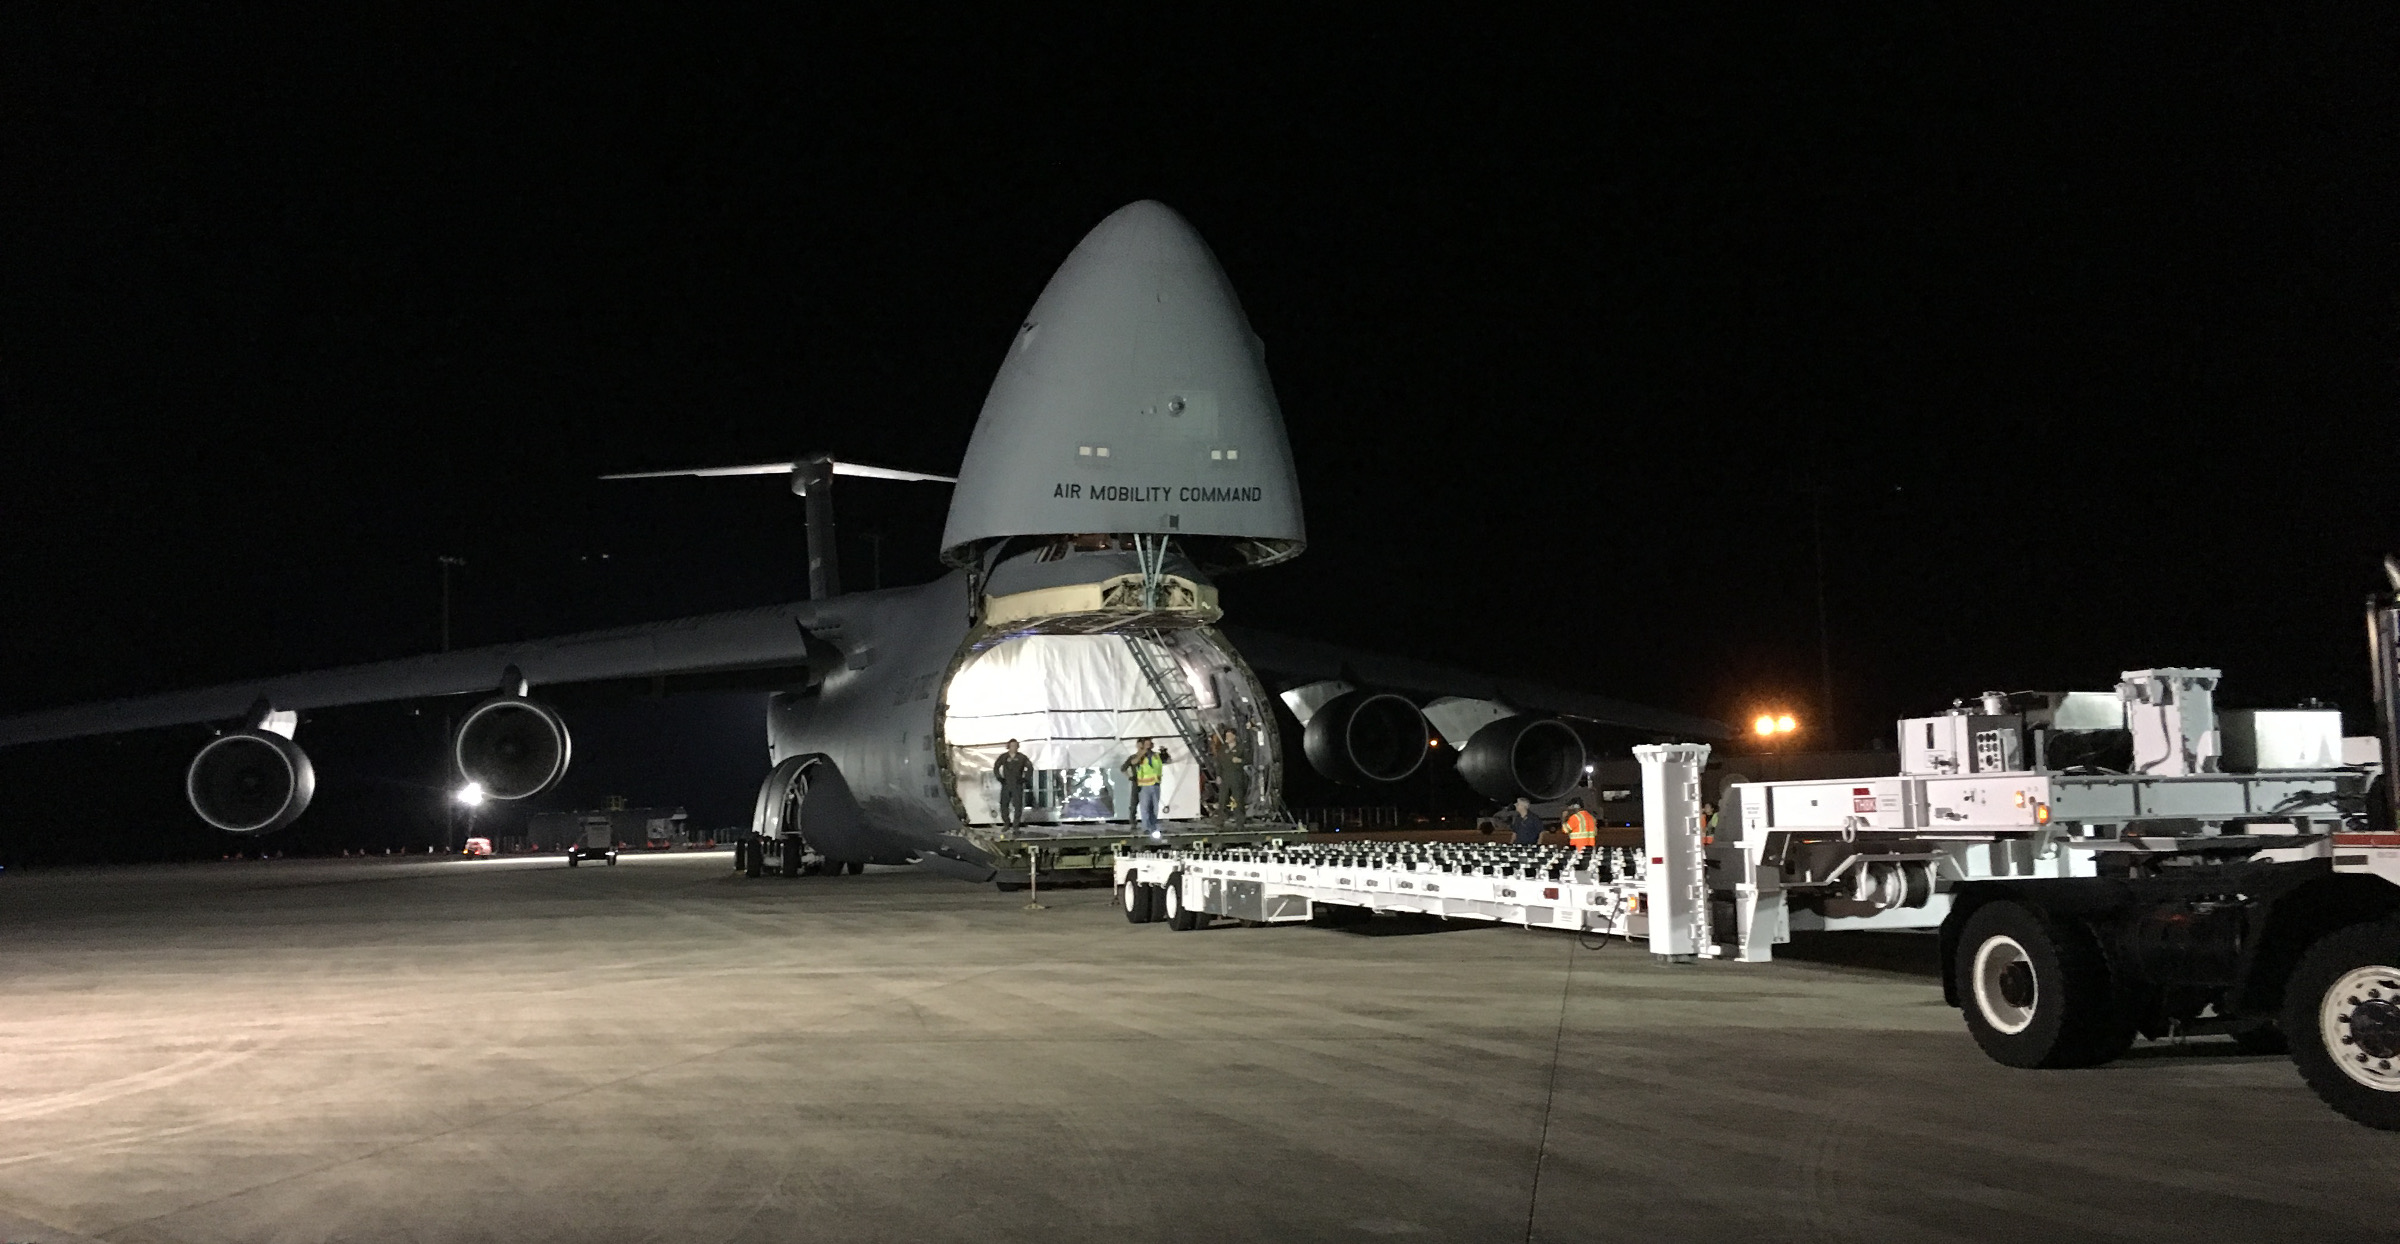 The special flatbed truck has to be lined up perfectly with the front cargo bay of the C-5.